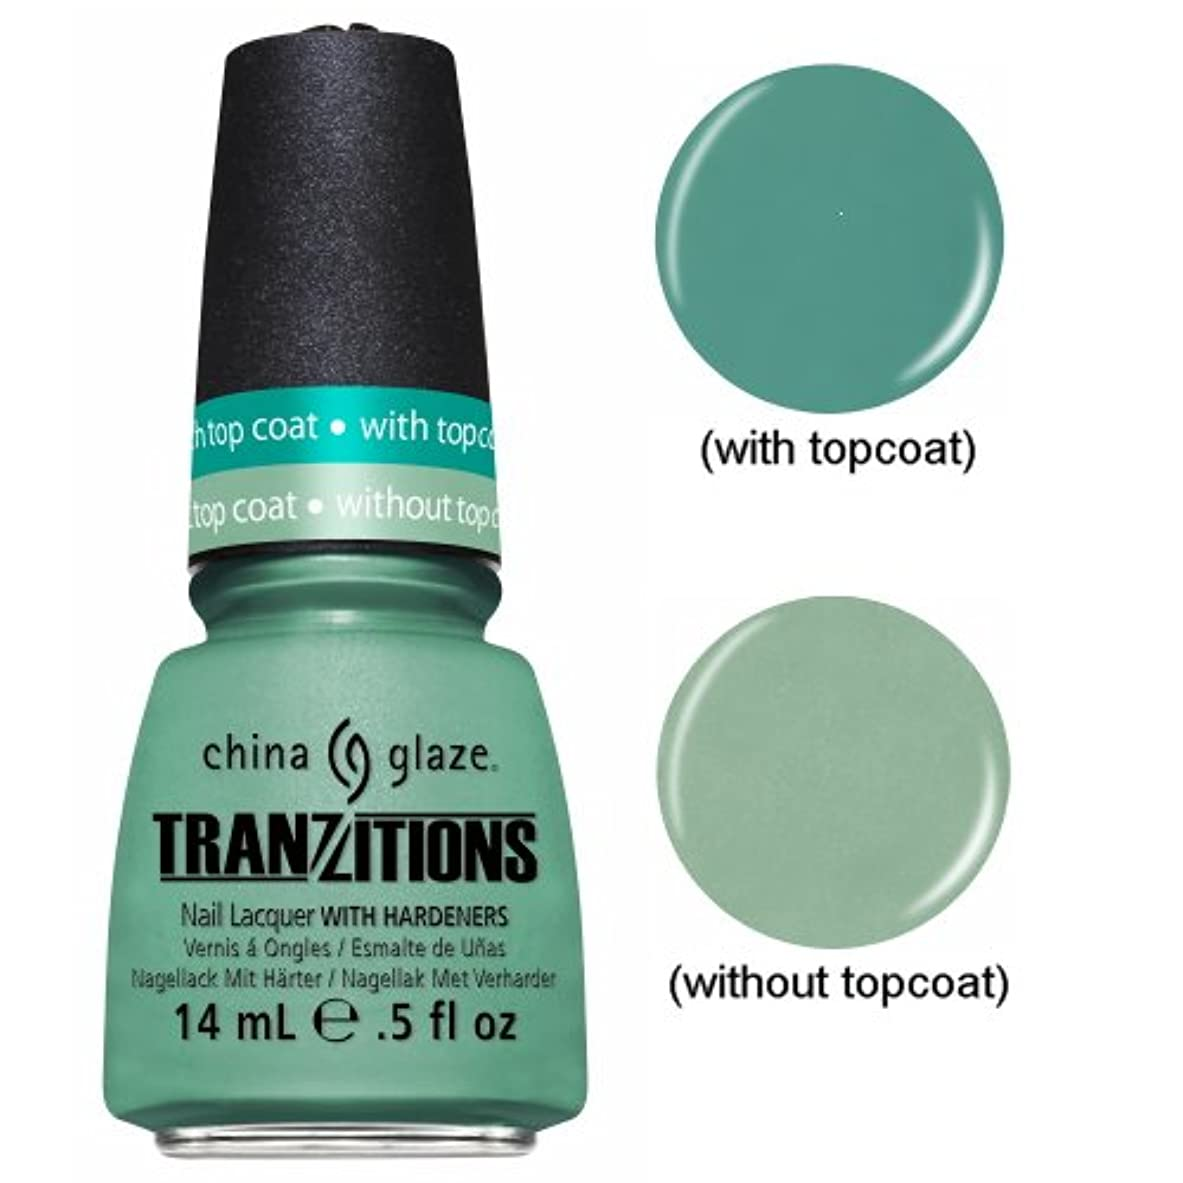 薄汚い電化する禁止する(3 Pack) CHINA GLAZE Nail Lacquer - Tranzitions - Duplicityy (並行輸入品)